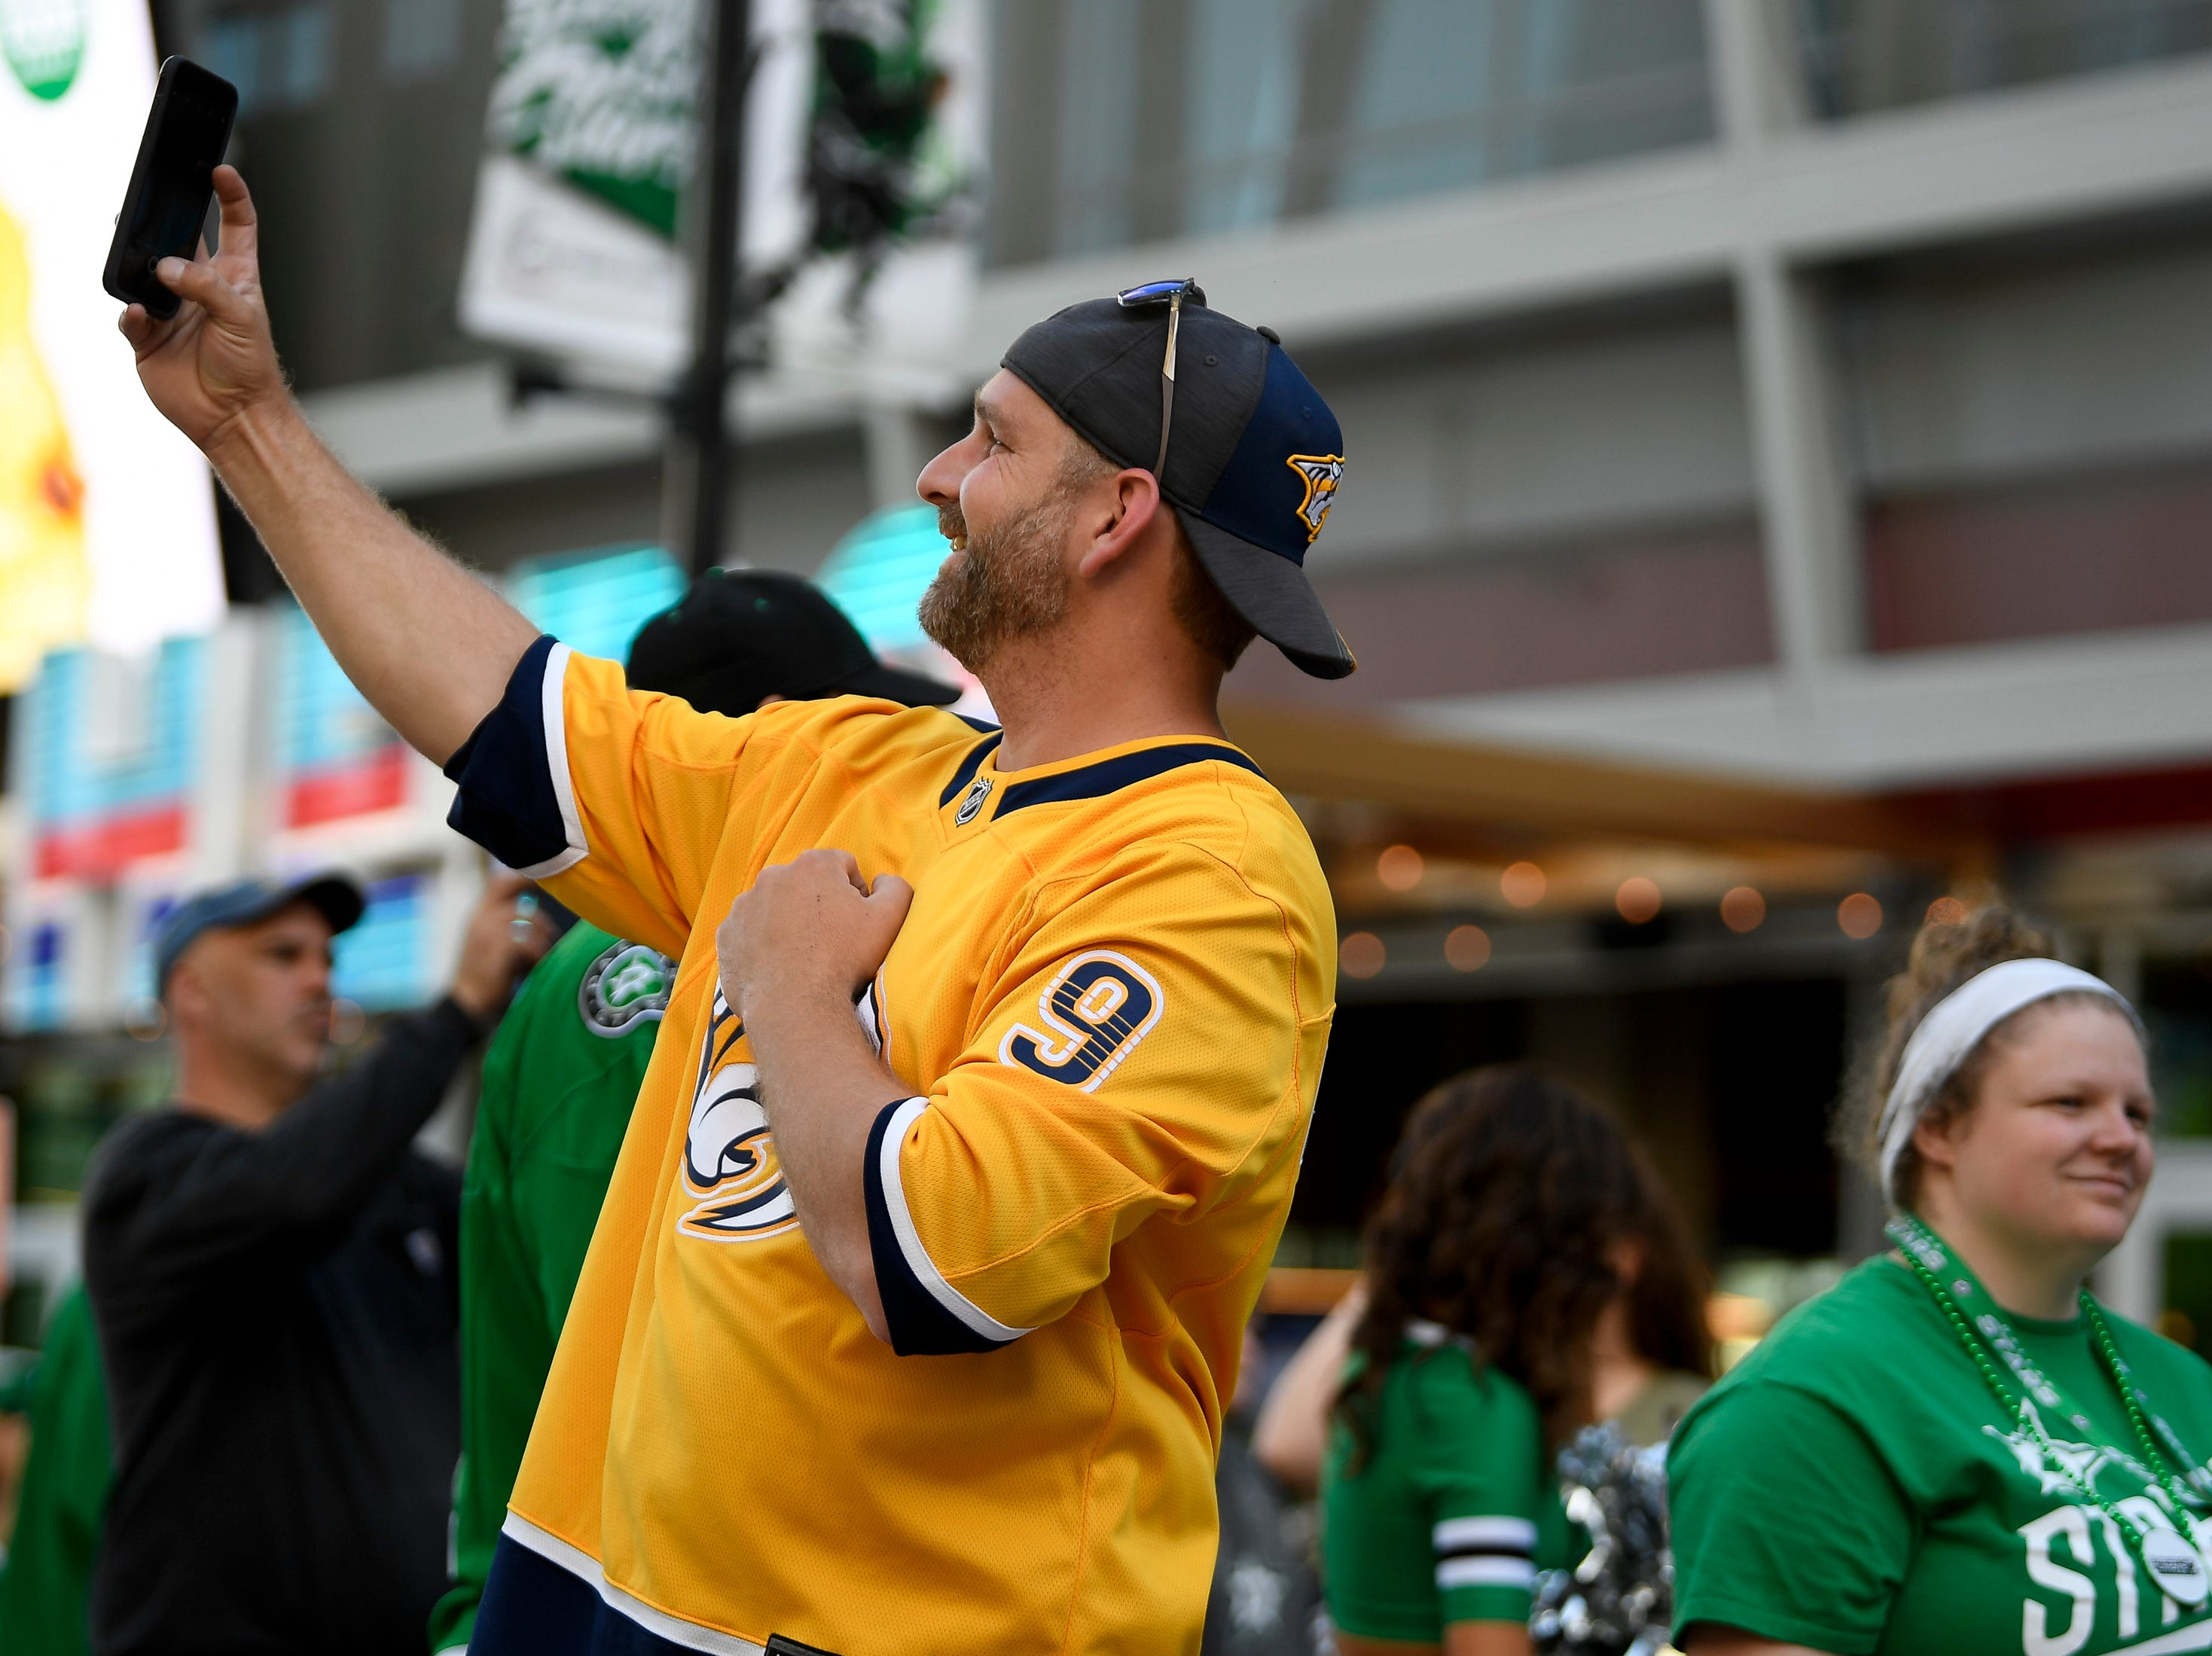 Predators fans Adam Jensen, of San Antionio, Texas, takes a picture before the divisional semifinal game between the Dallas Stars and the Nashville Predators at the American Airlines Center in Dallas, Texas., Monday, April 15, 2019.